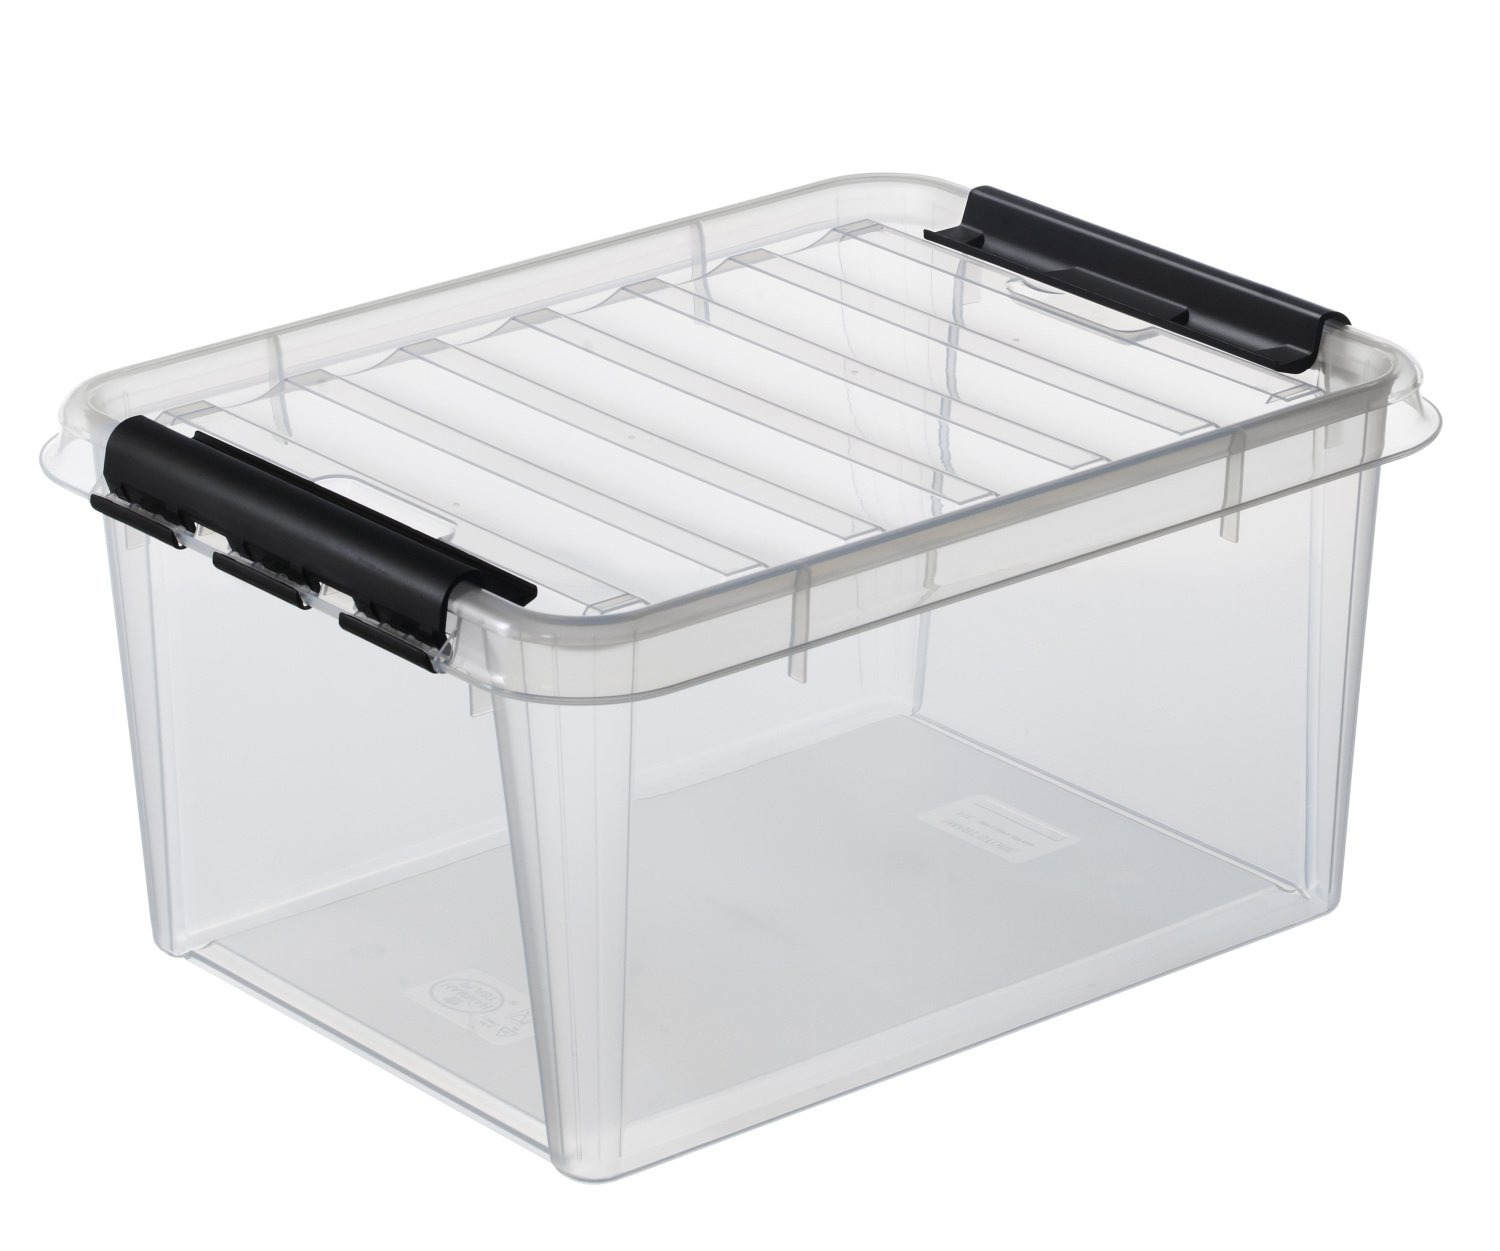 Orthex Clipbox Smart Store Classic 31, transparent 3510070 Orthex Group